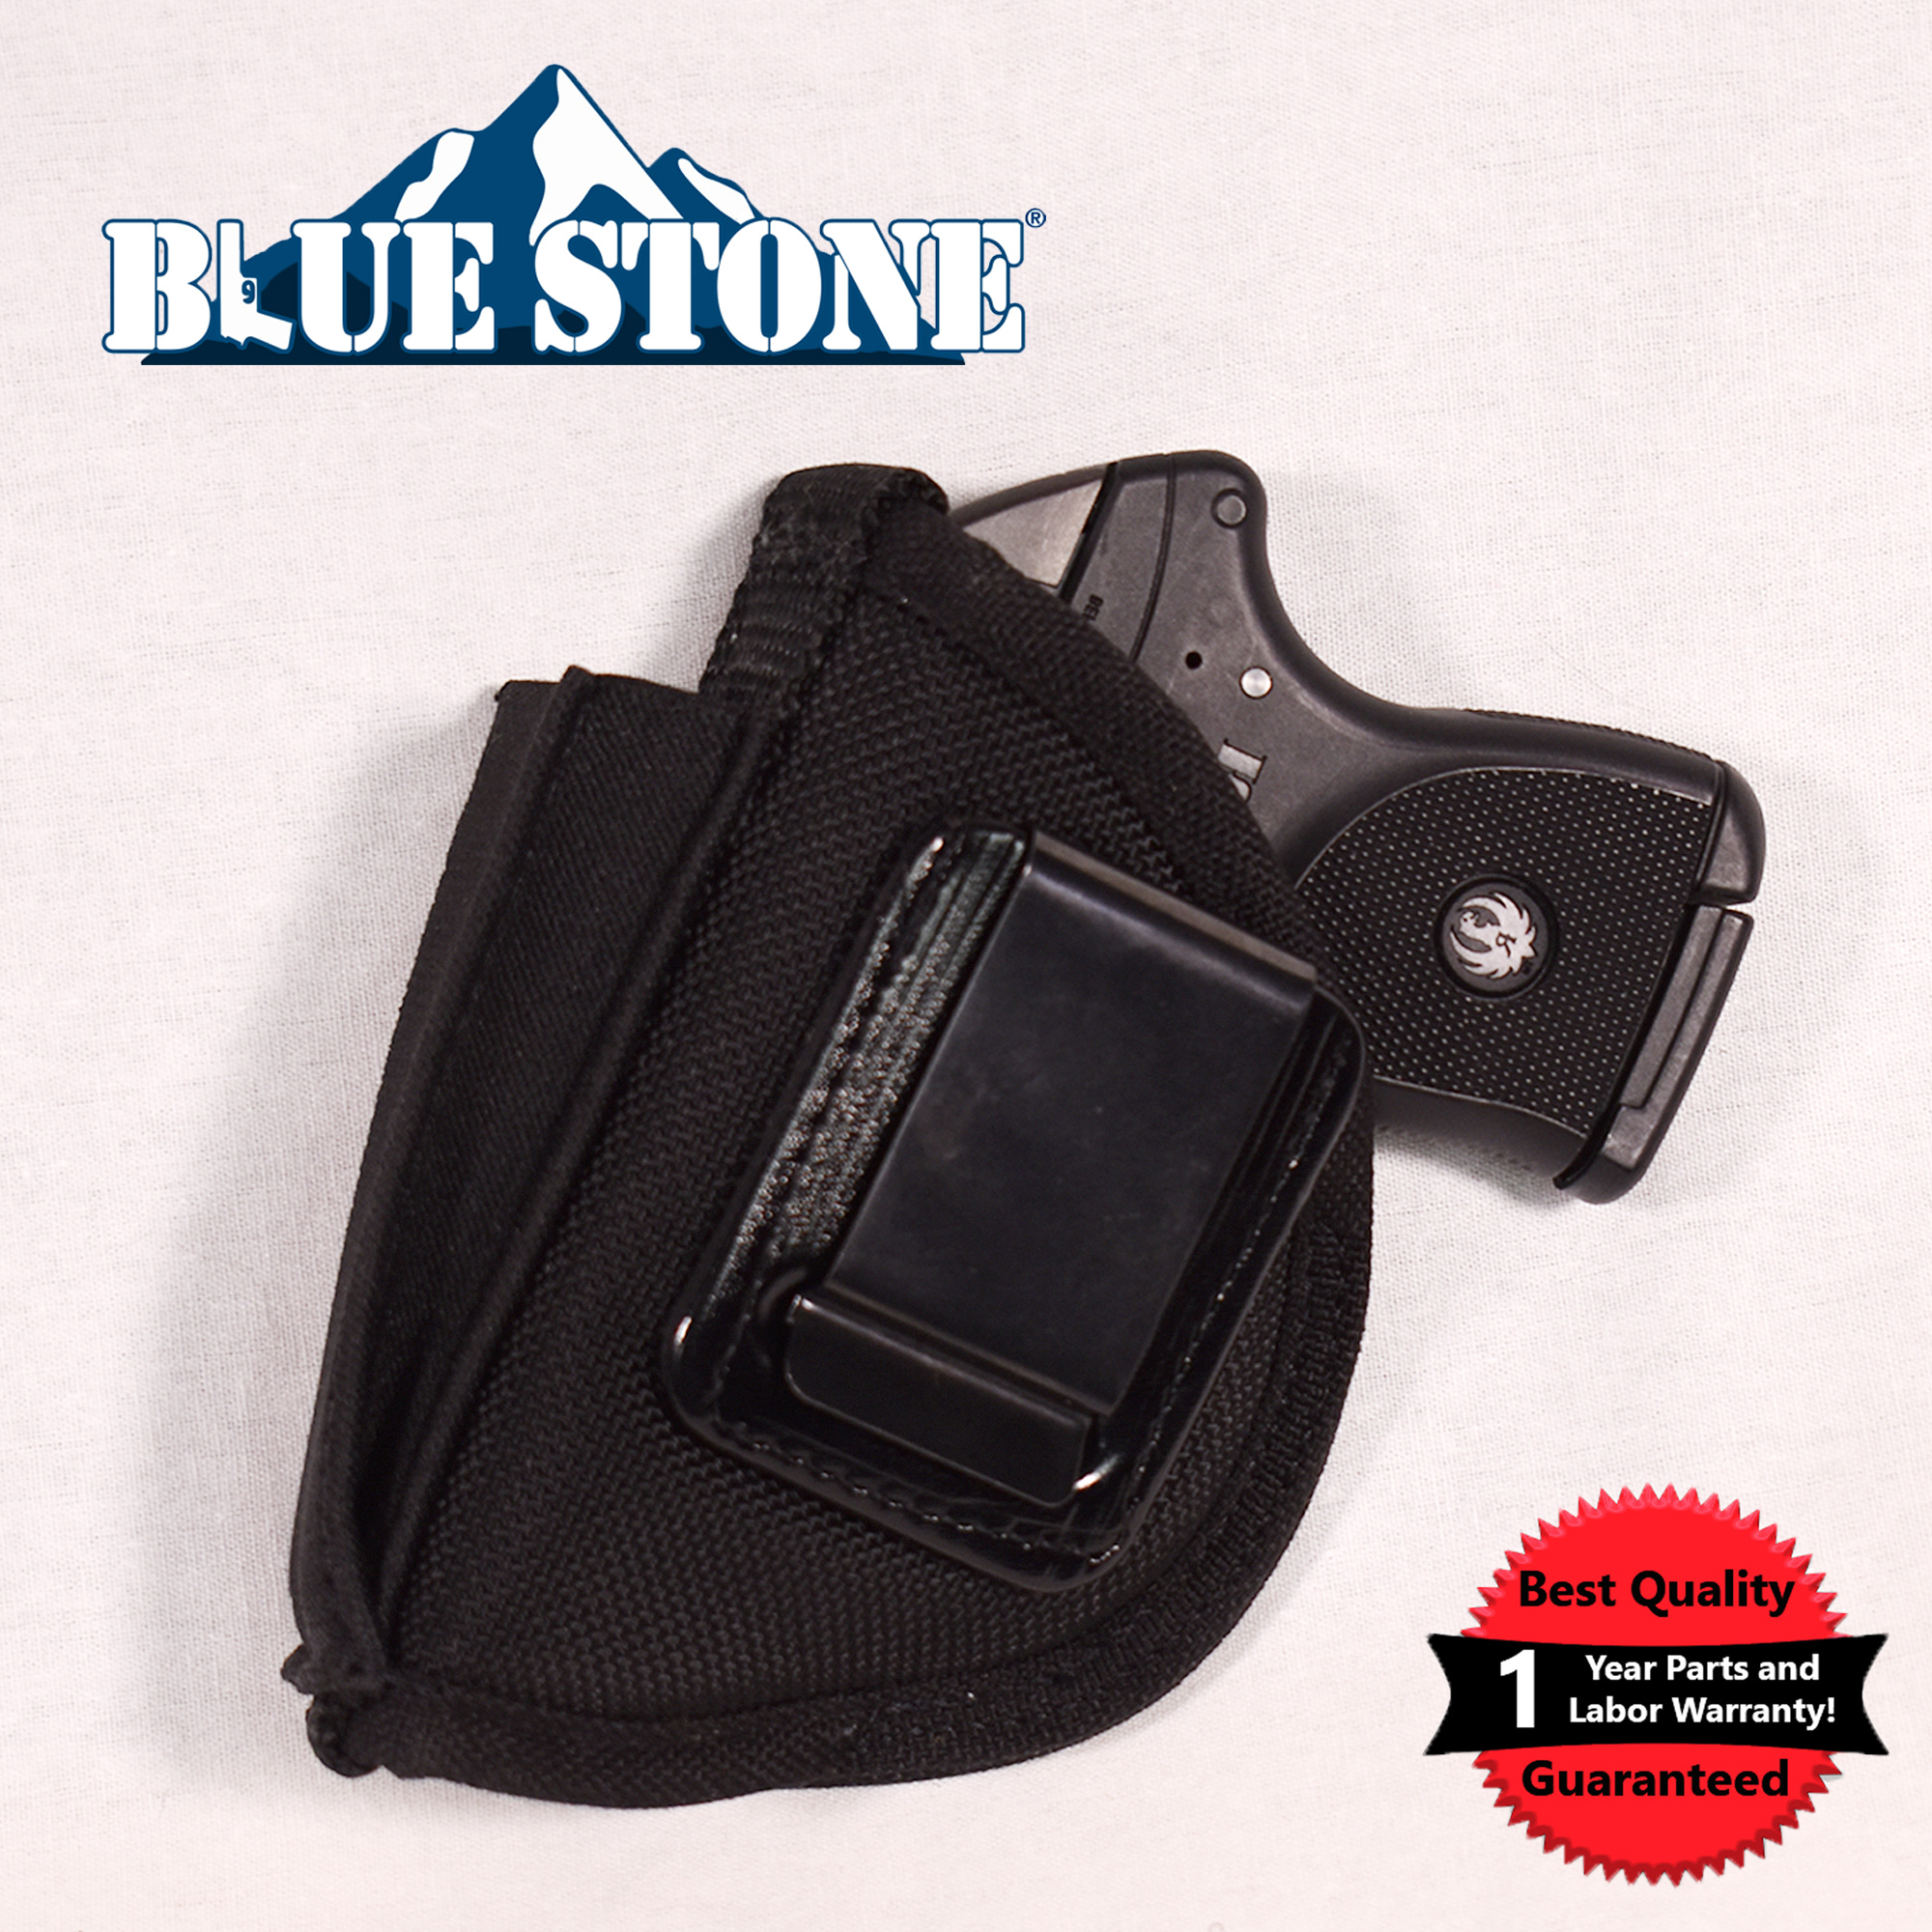 Bluestone Special Ops Ruger LCP IWB Holster with Mag| Inside waistband holster for Ruger LCP, Glock 42, S&W Shield| Iwb... by Blue Stone Safety Products